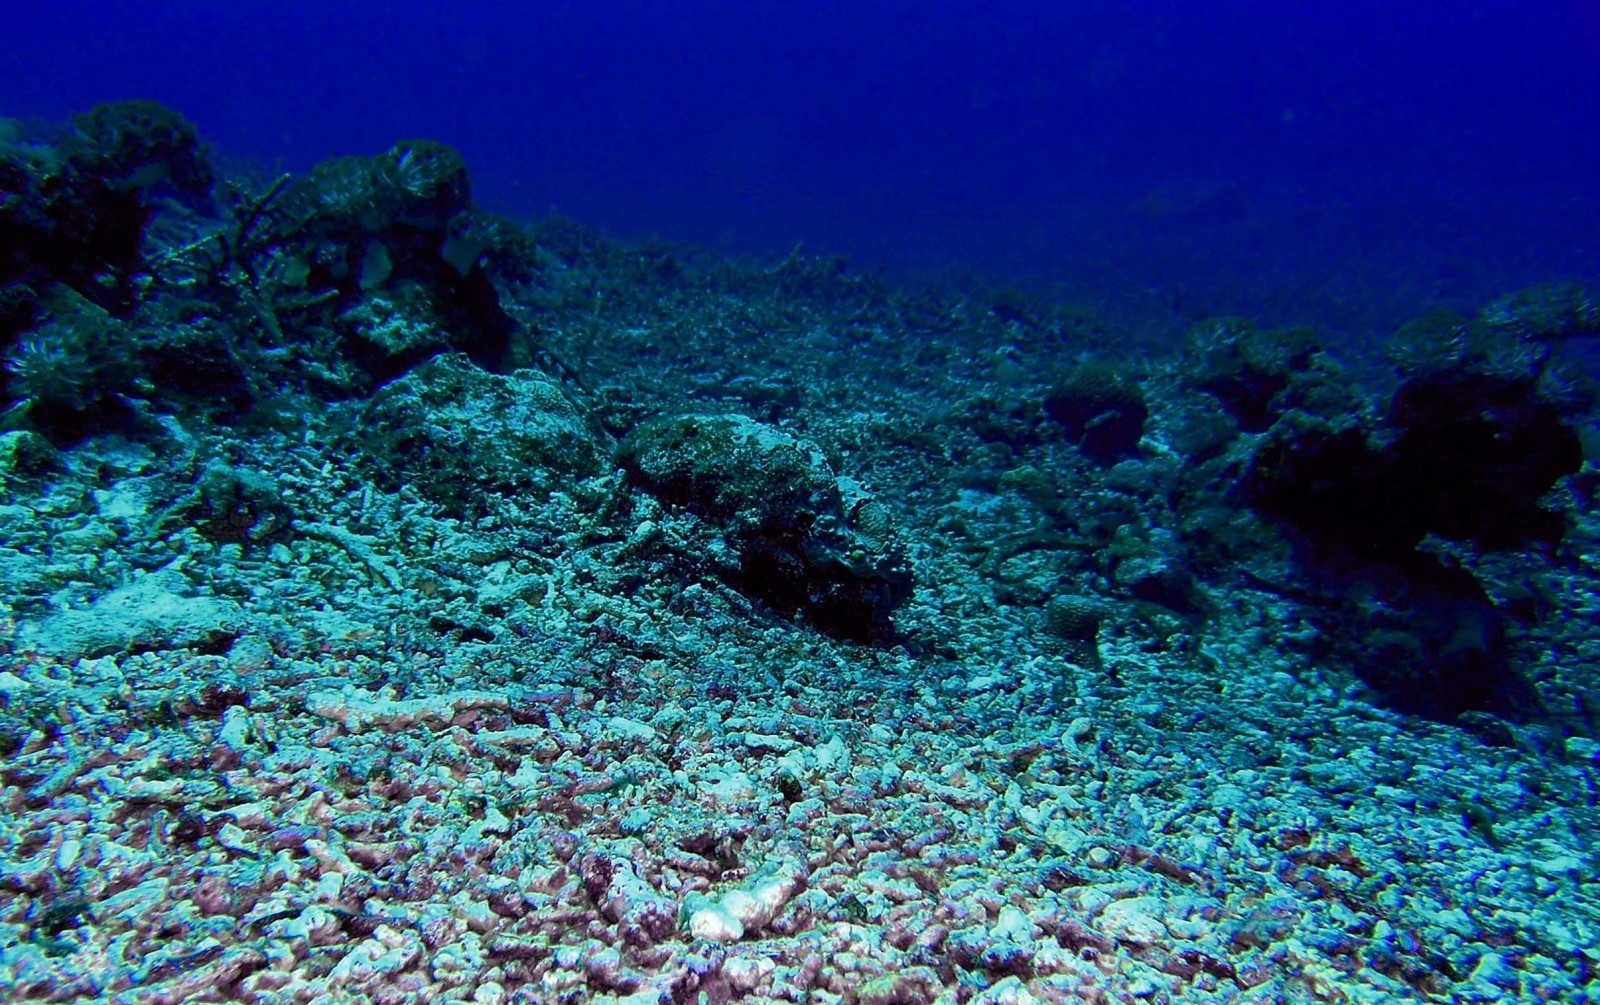 reef-coral-rubble-wwf-philippines.jpg